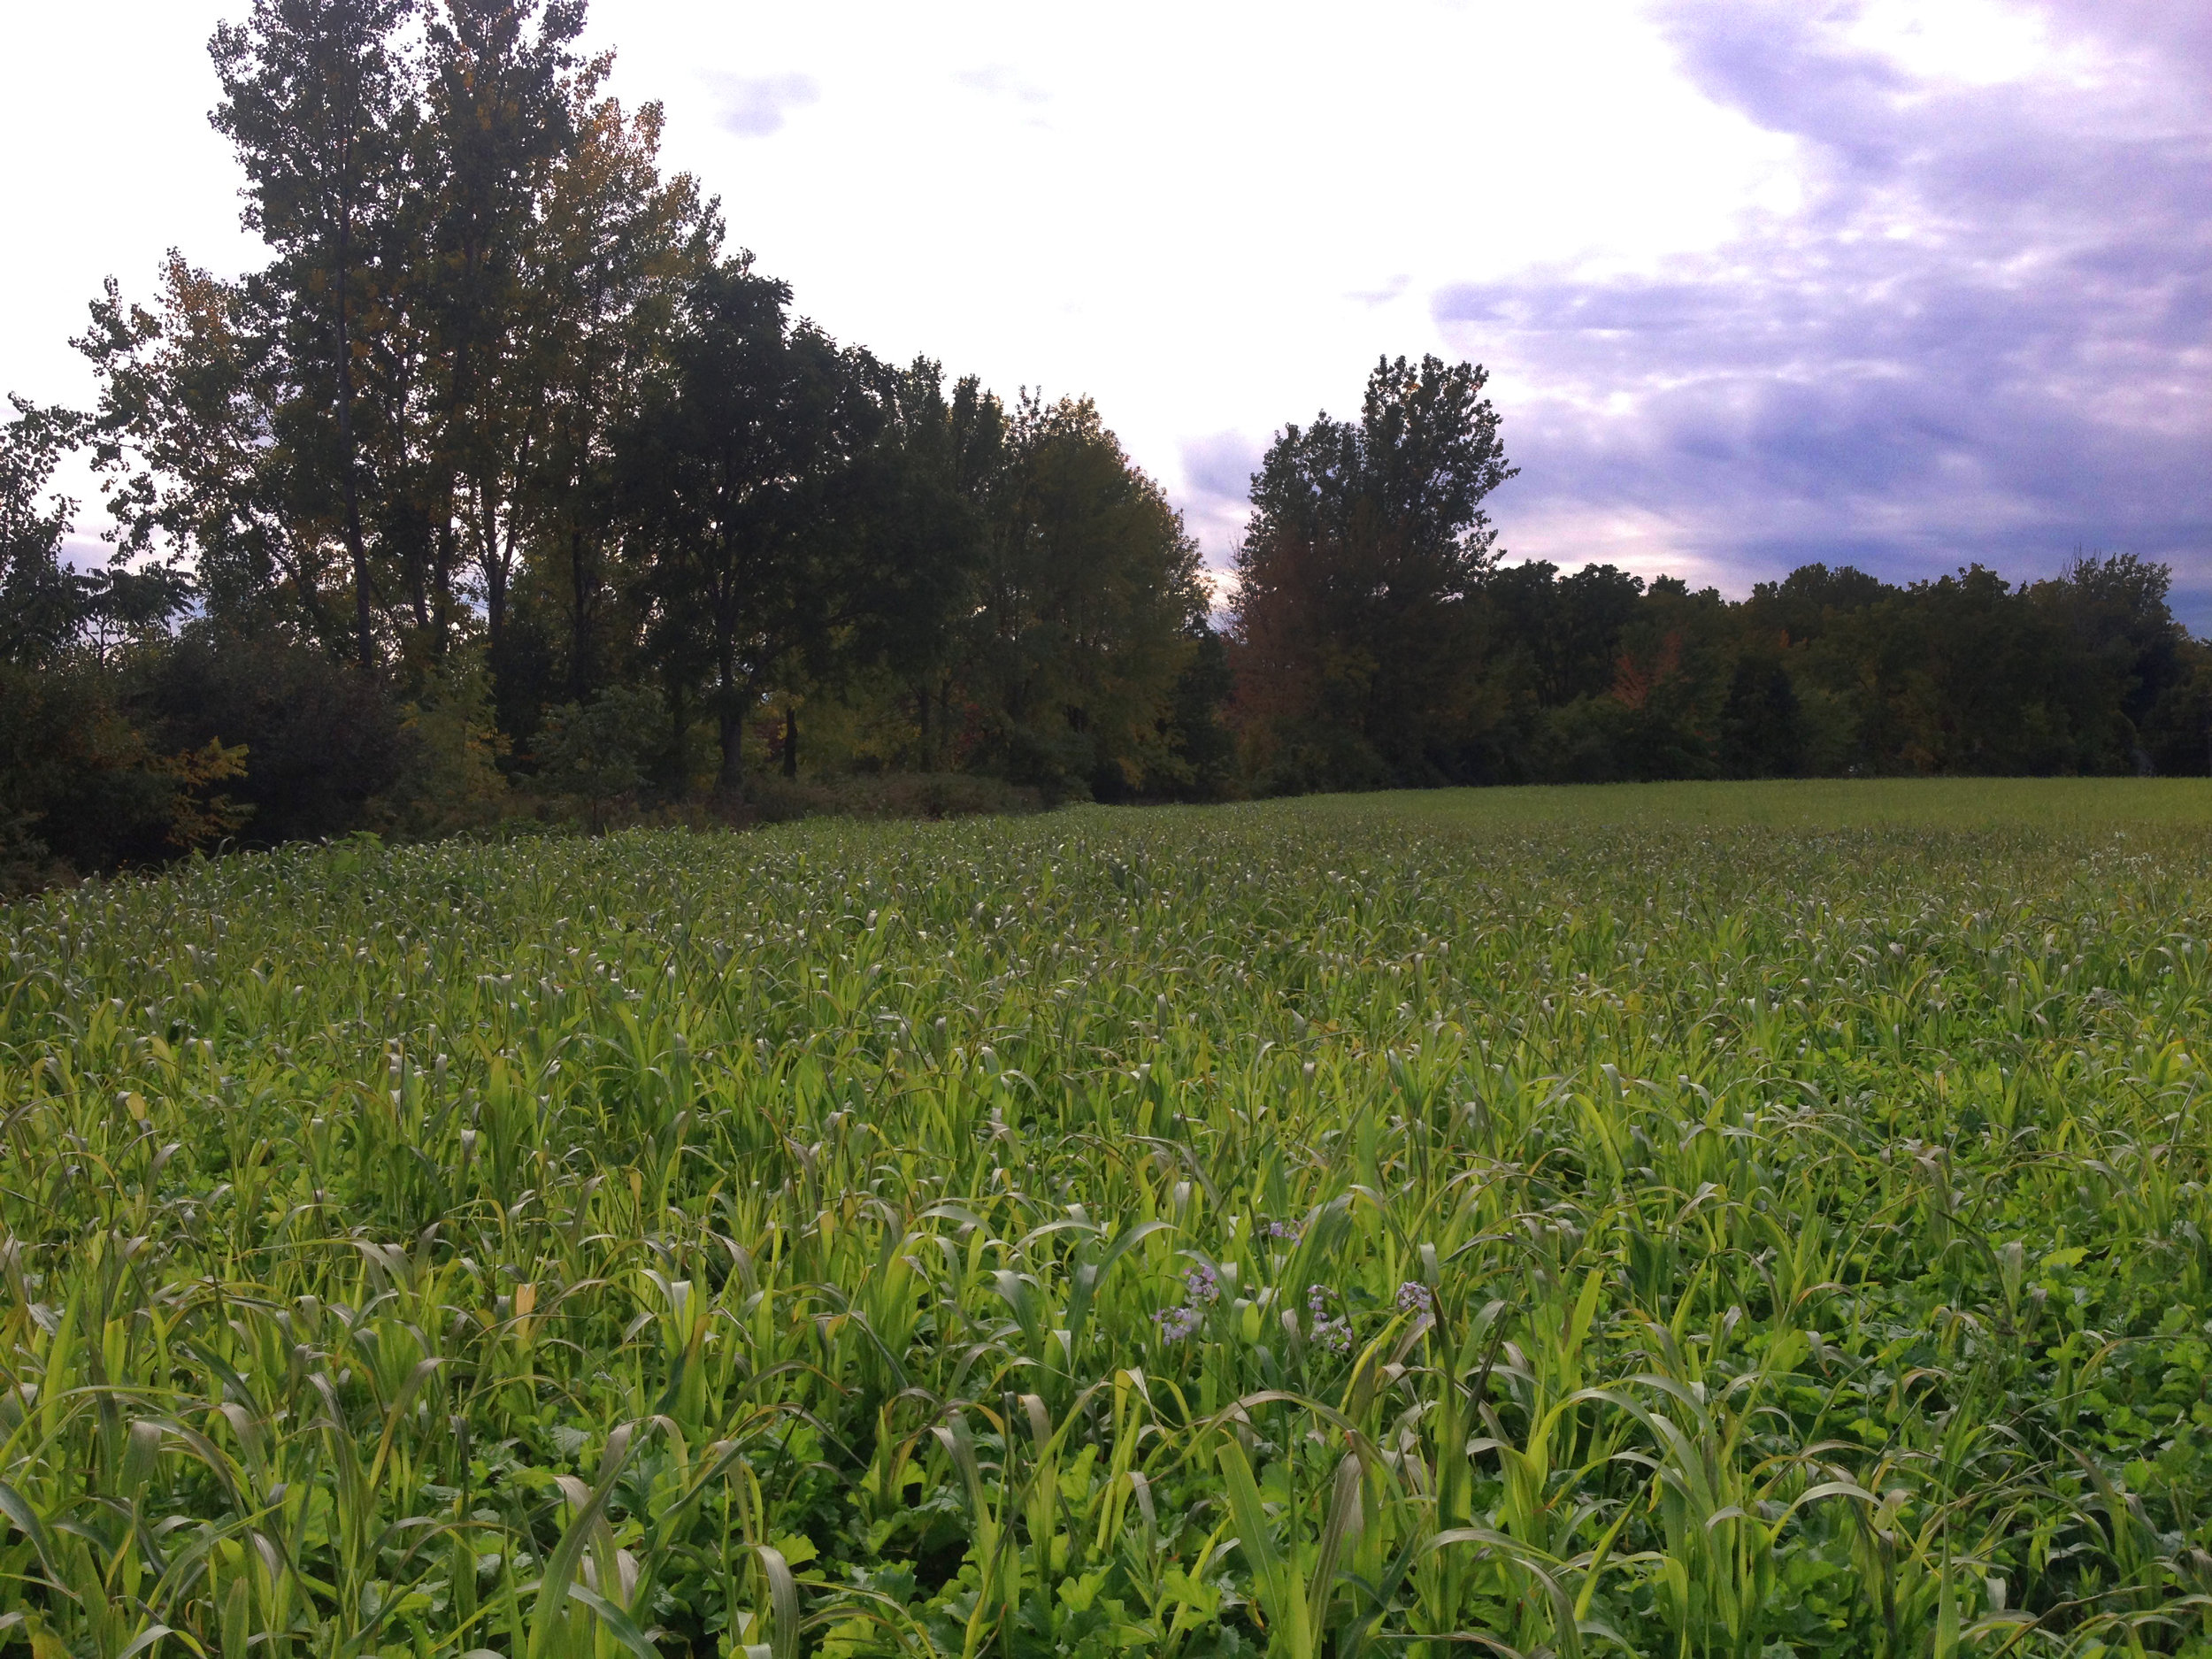 One of Toussaint's fields in an elaborate multi-species cover crop mix in September 2016. Photo by Jena Buckwell.